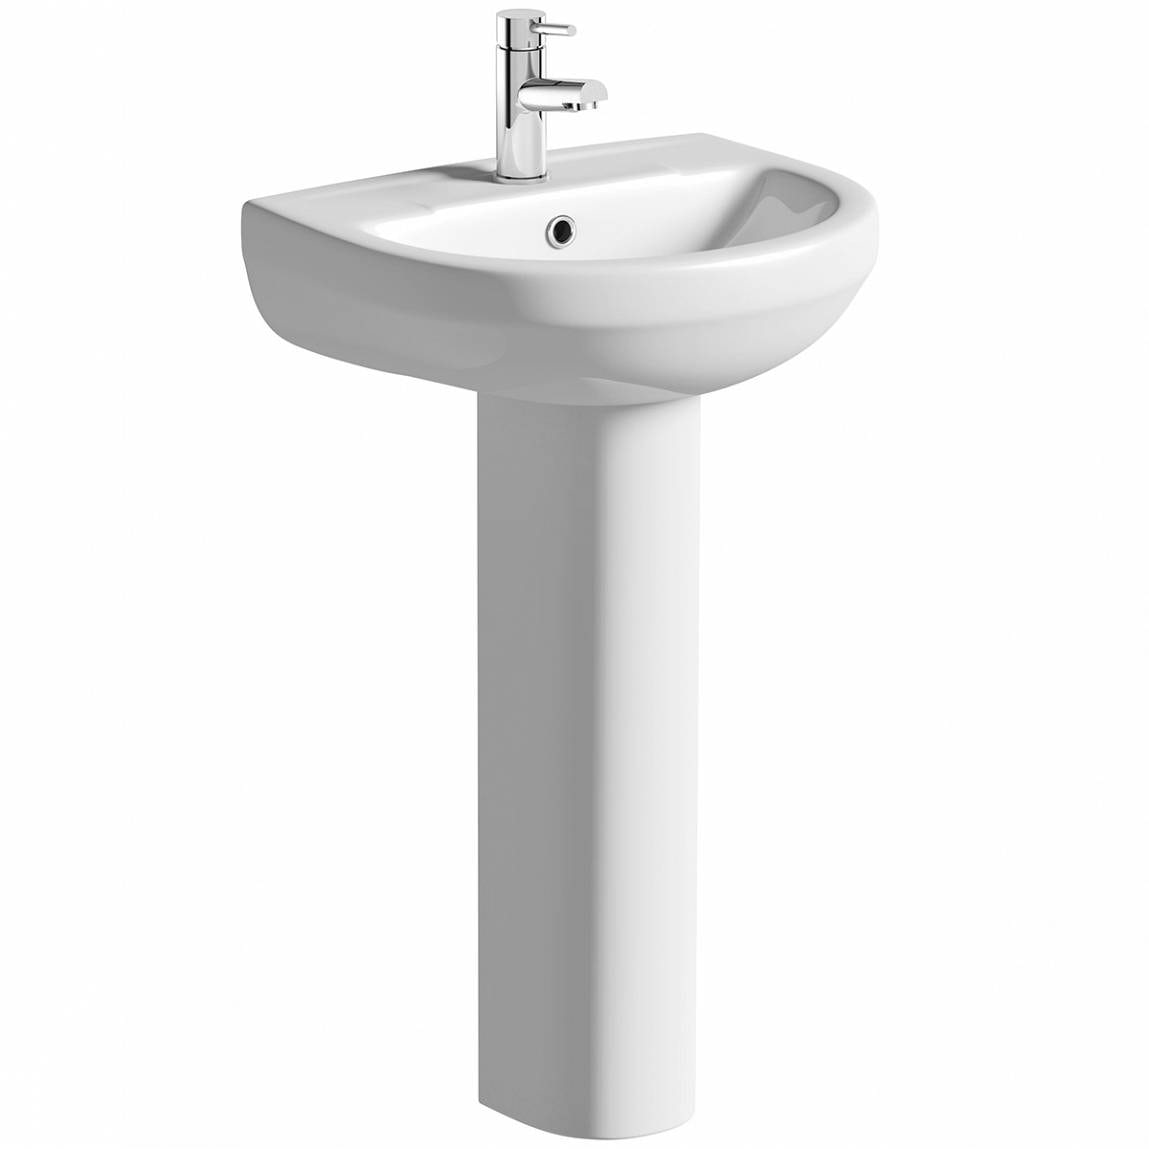 Eden 1 tap hole full pedestal basin with waste